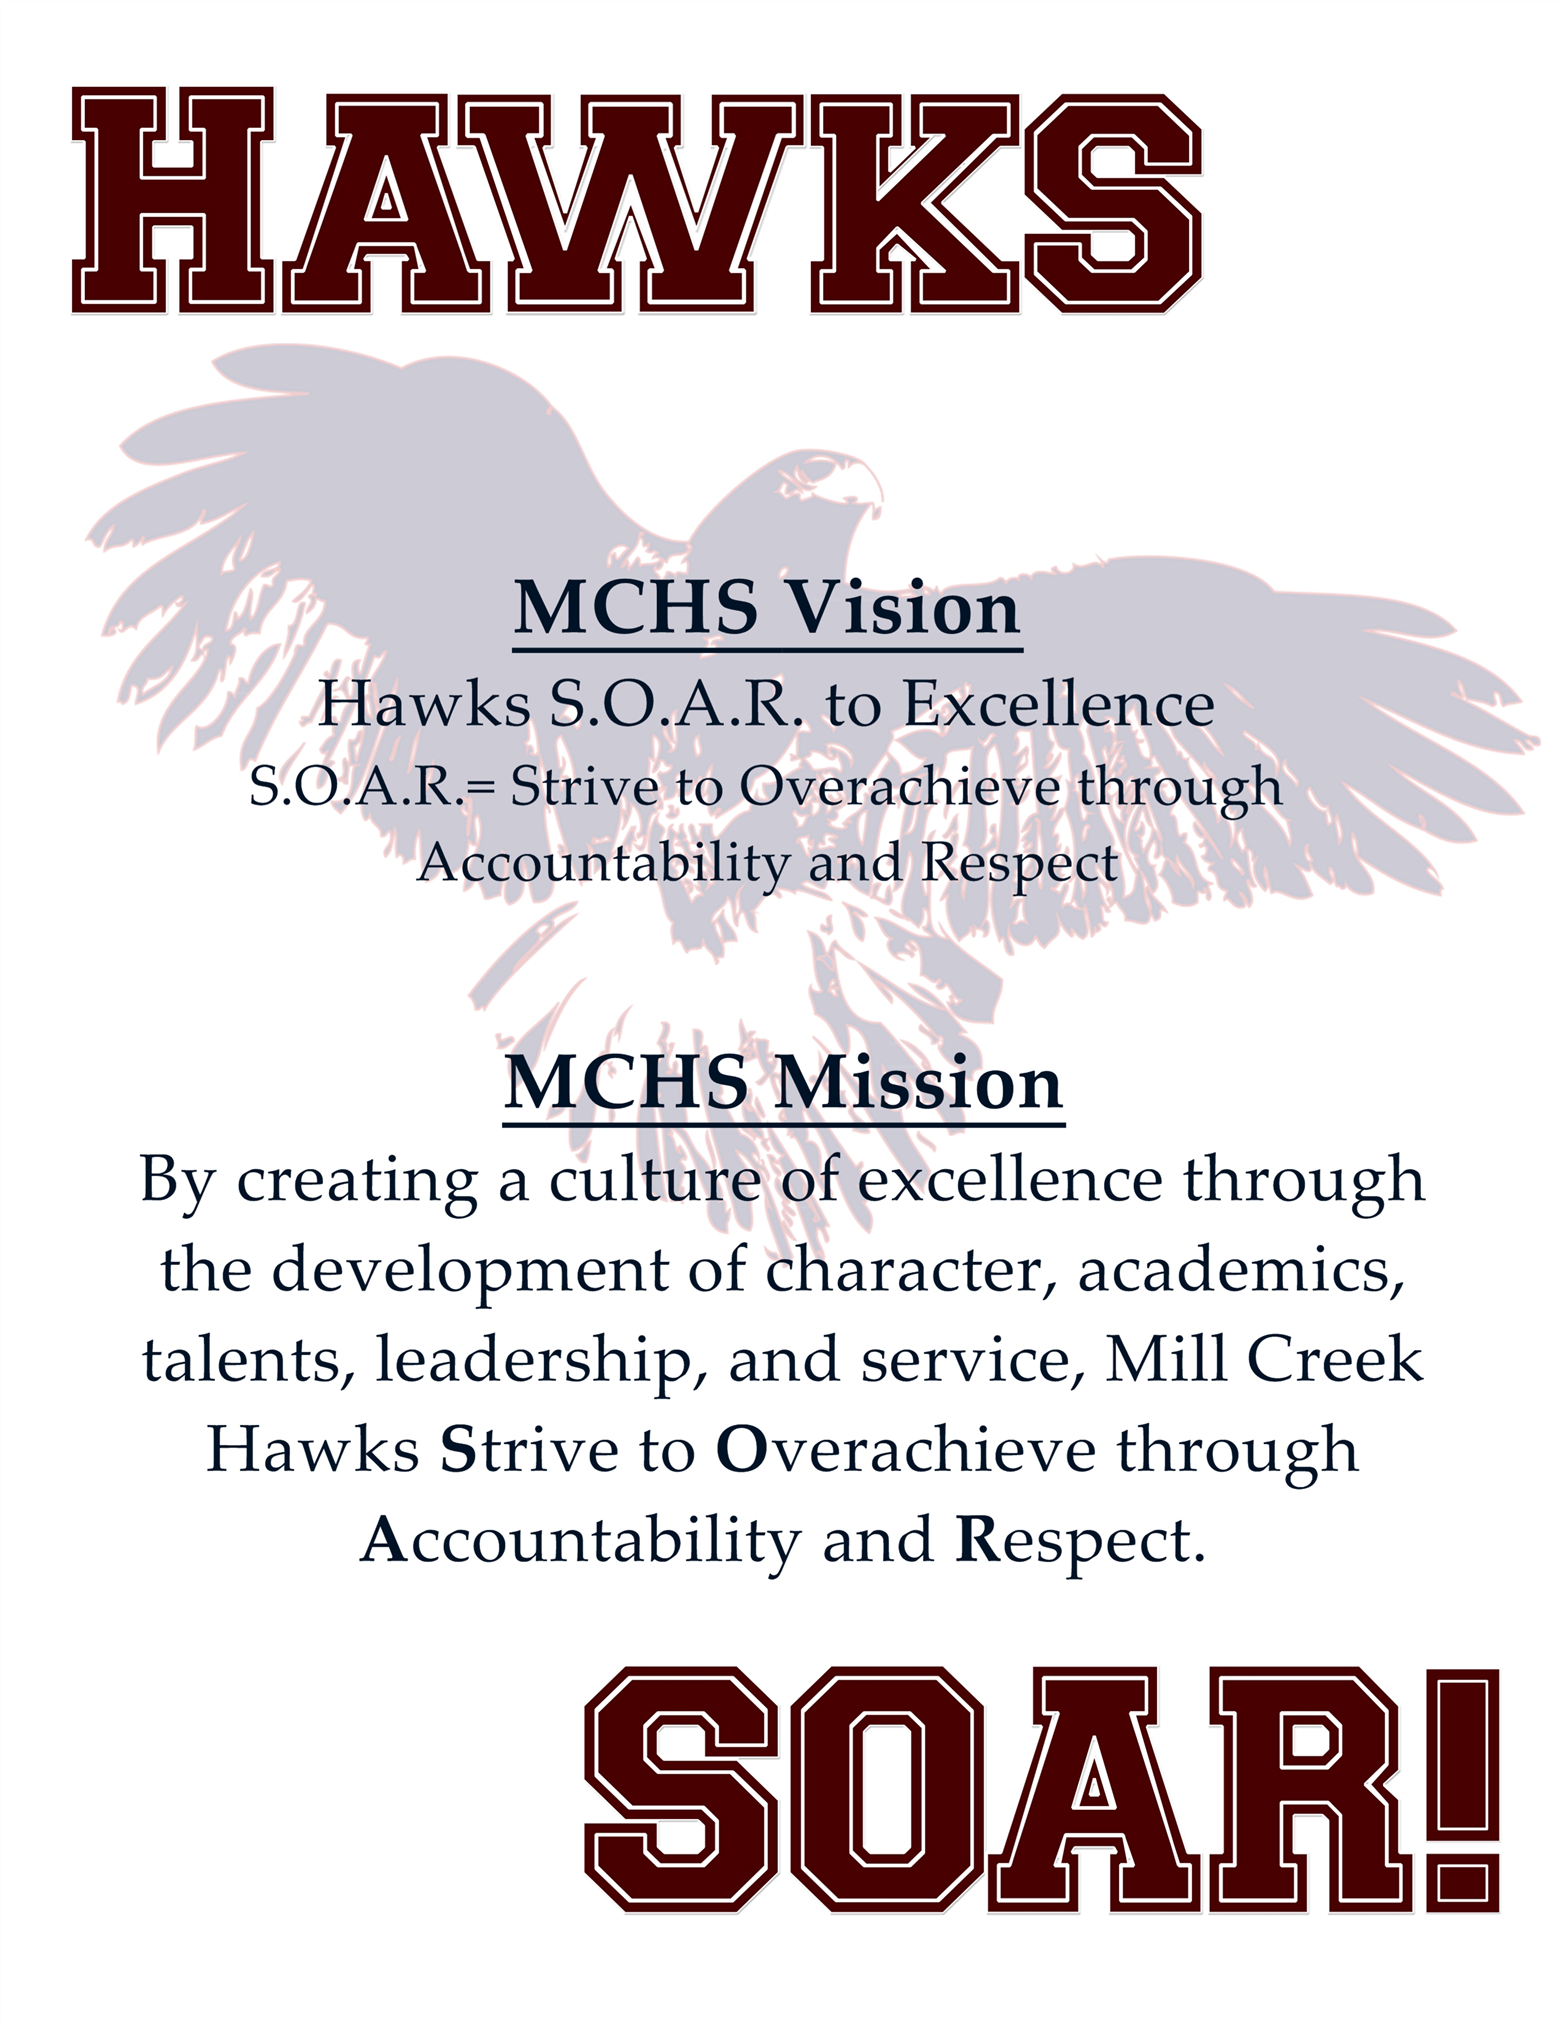 Hawks soar to excellence by creating a culture of excellence through the development of character, academics, talents, leader